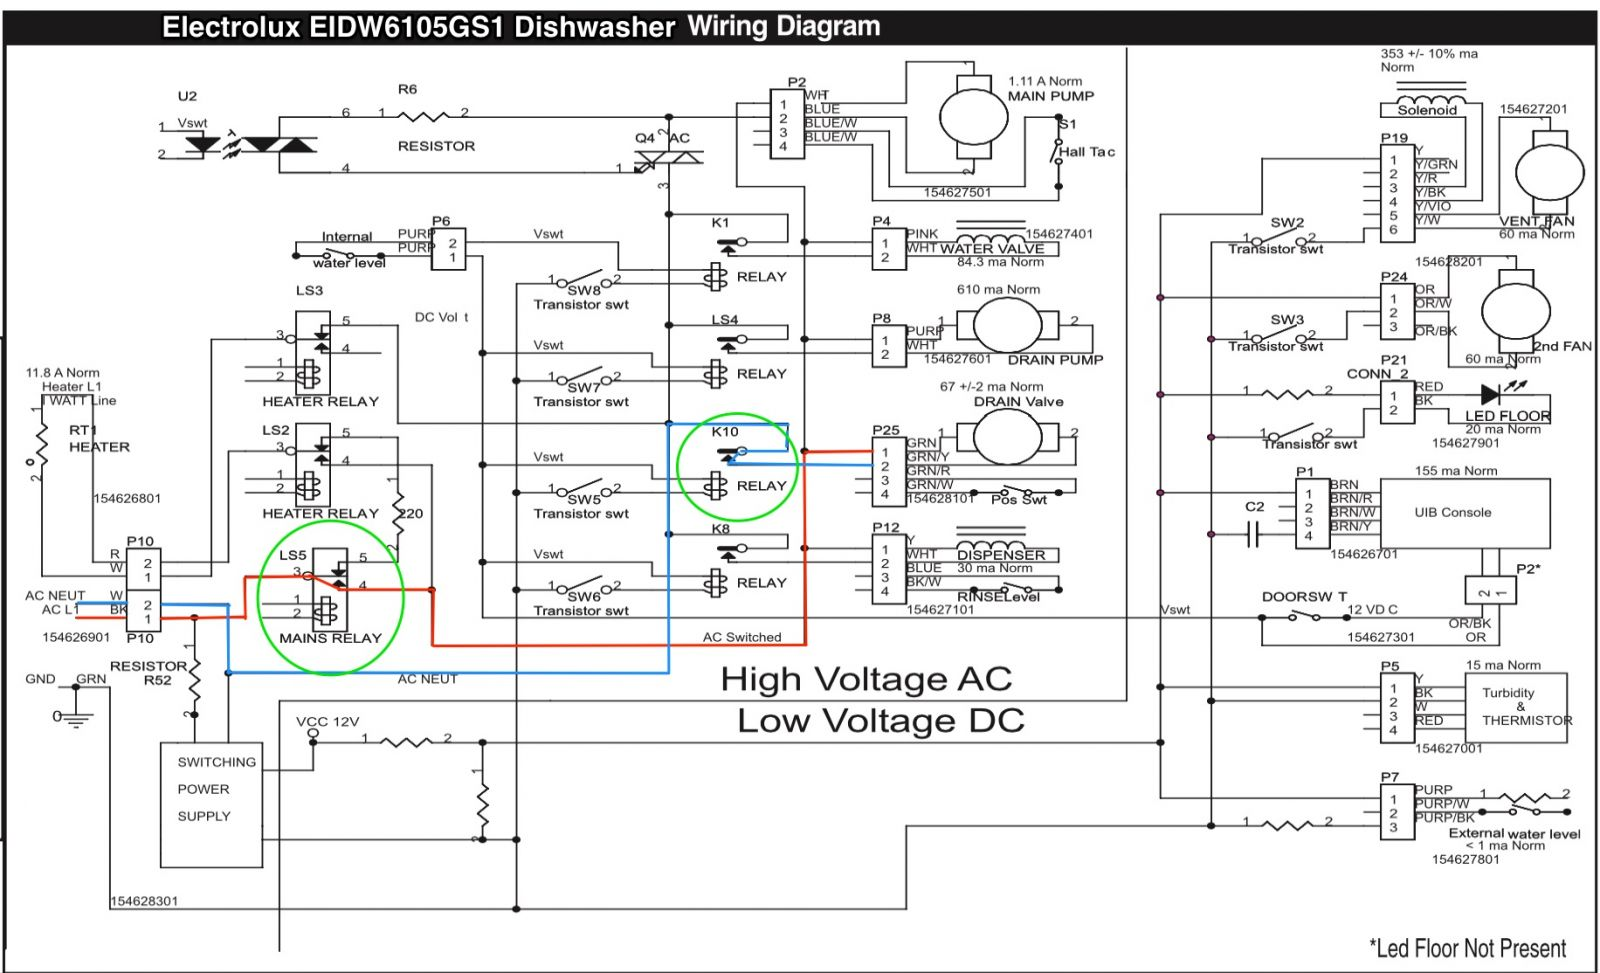 electrolux eidw6105gs1 dishwasher wiring diagram the appliantology rh appliantology org Dishwasher Wiring- Diagram Wiring a Dishwasher